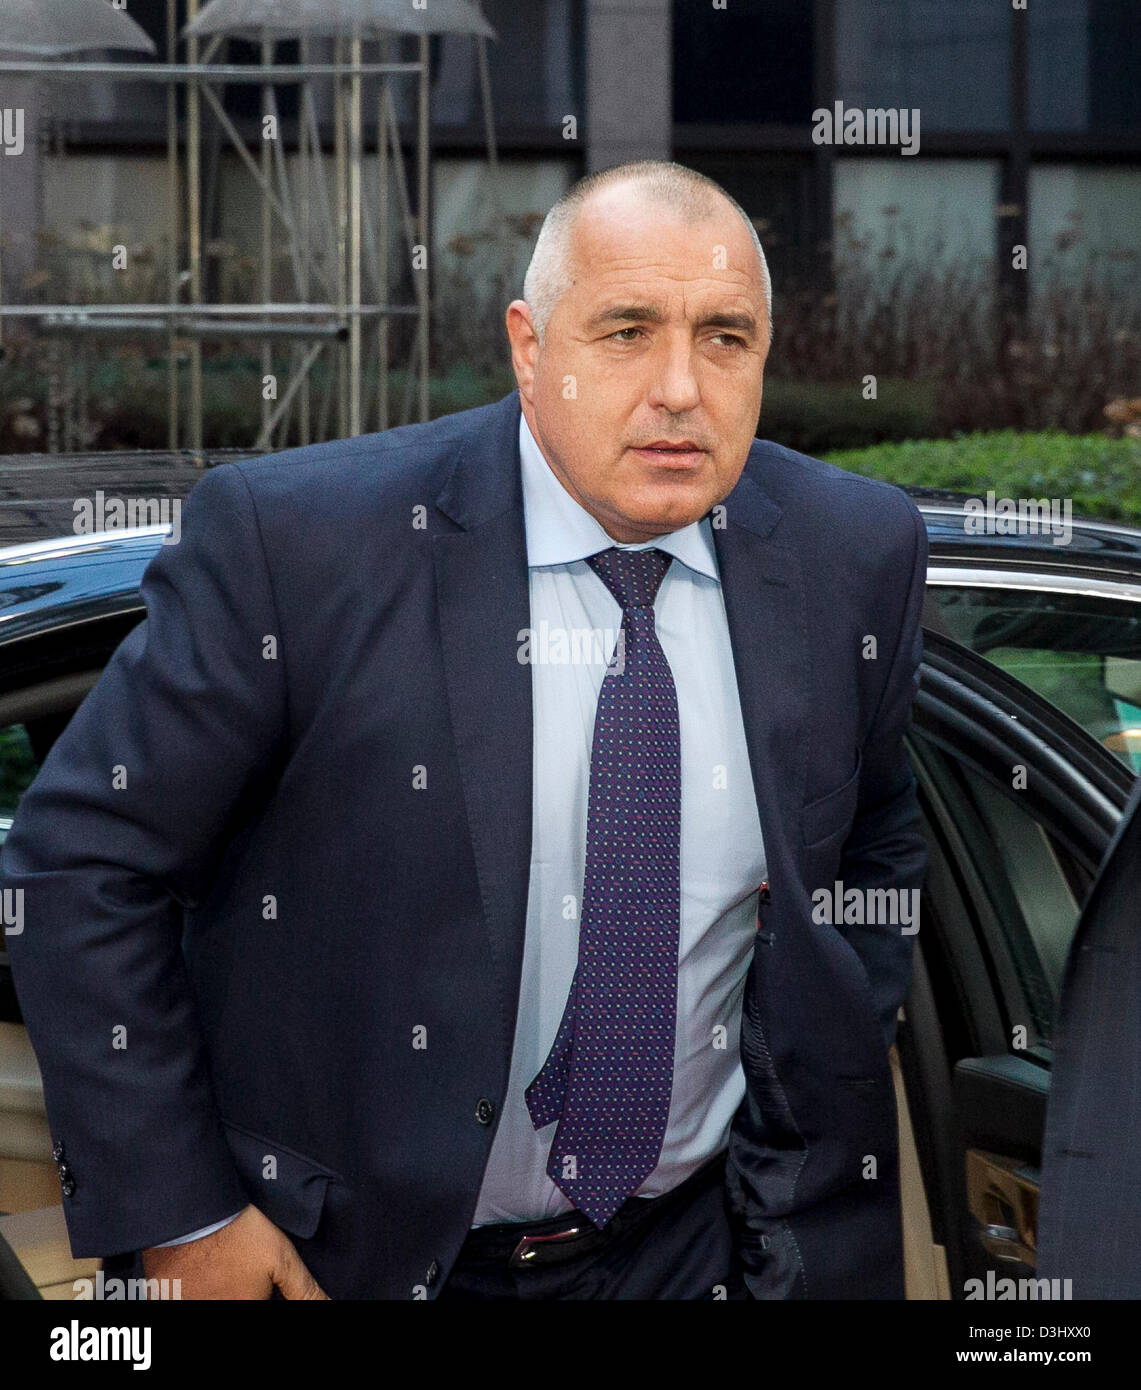 Bulgarian prime minister Boiko Borisov, whose government resigned is seen arriving at the European Council. Bulgaria's - Stock Image